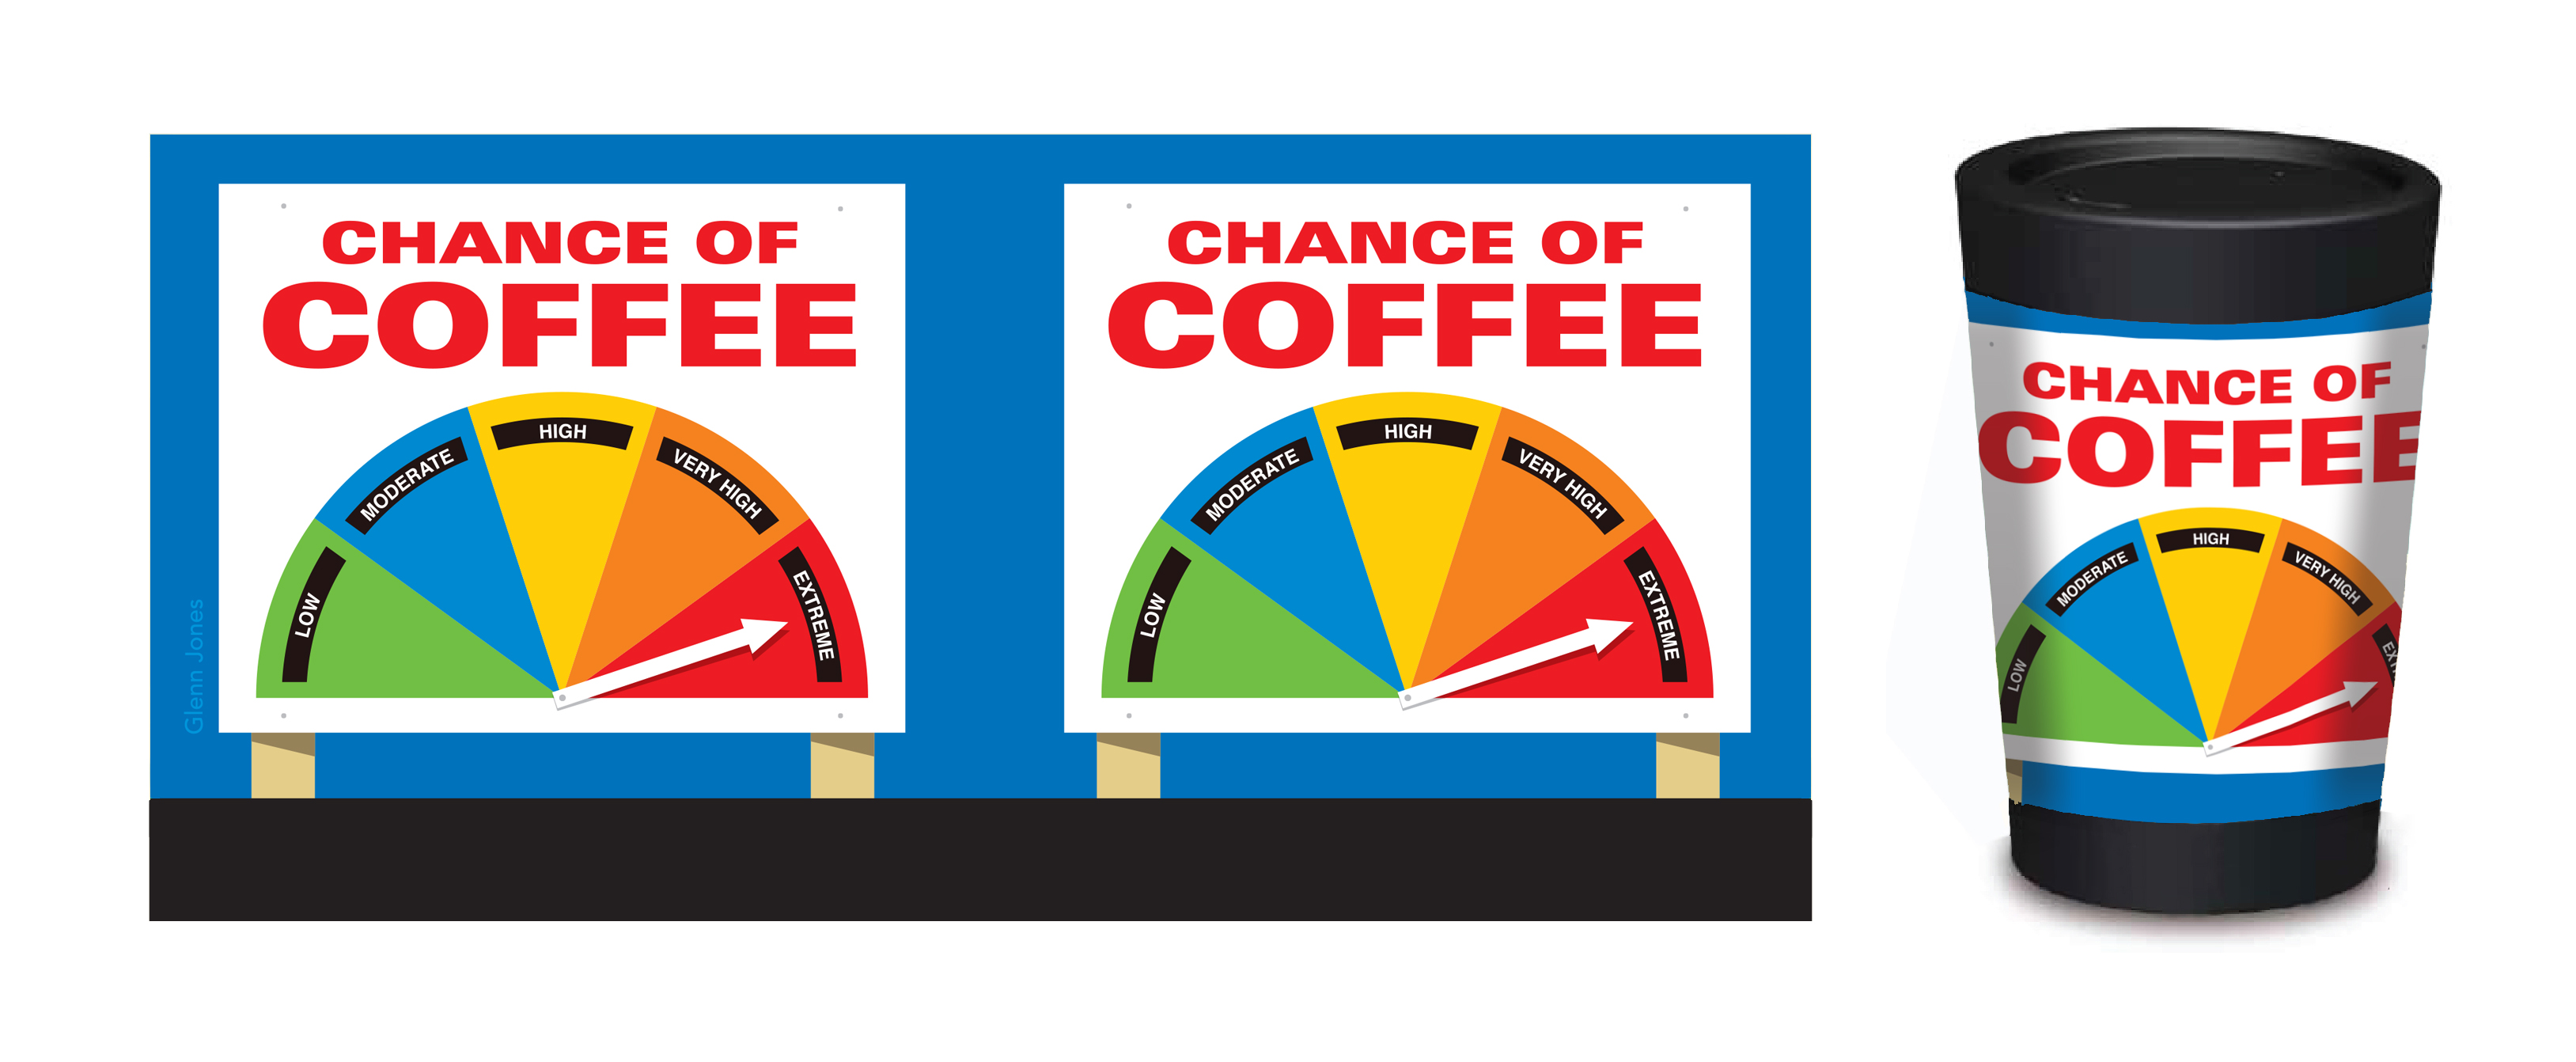 Chance of Coffee